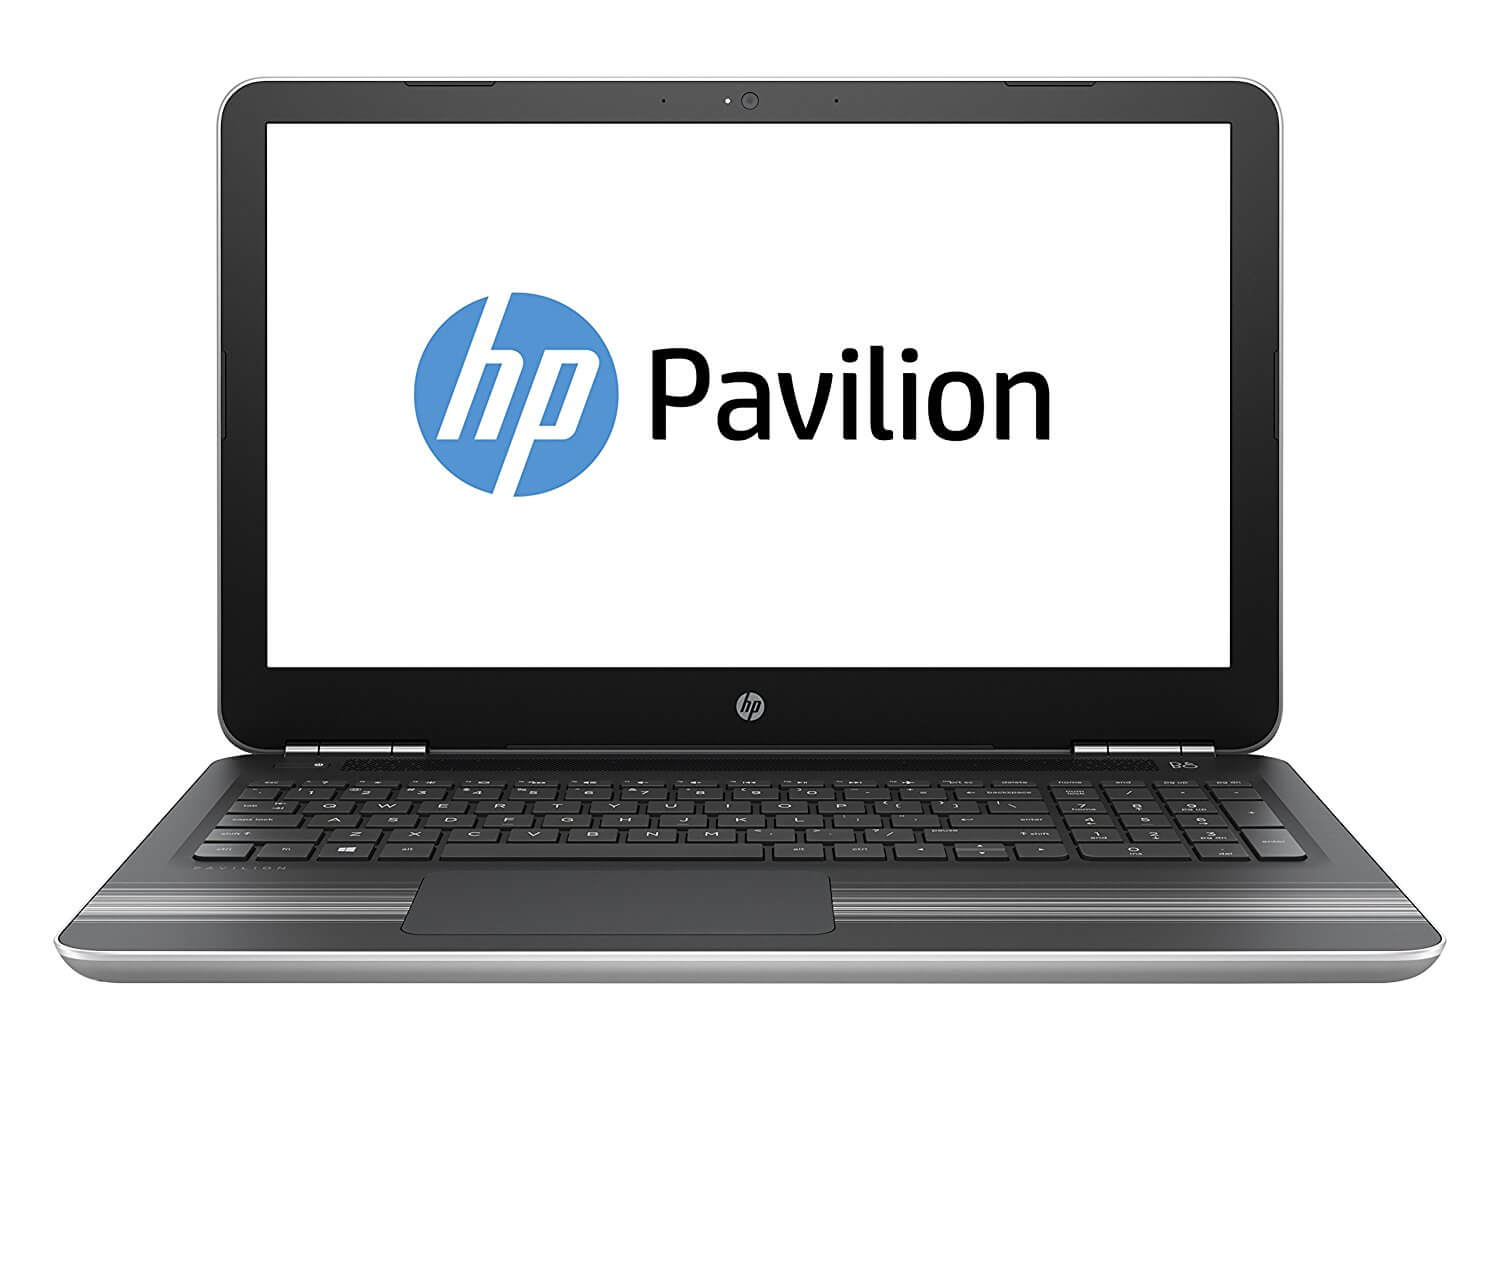 HP Pavilion 15-AU624TX 15.6-inch Laptop (7th Gen Core i5-7200U/4GB/1TB/Windows 10 Home/4GB Graphics)